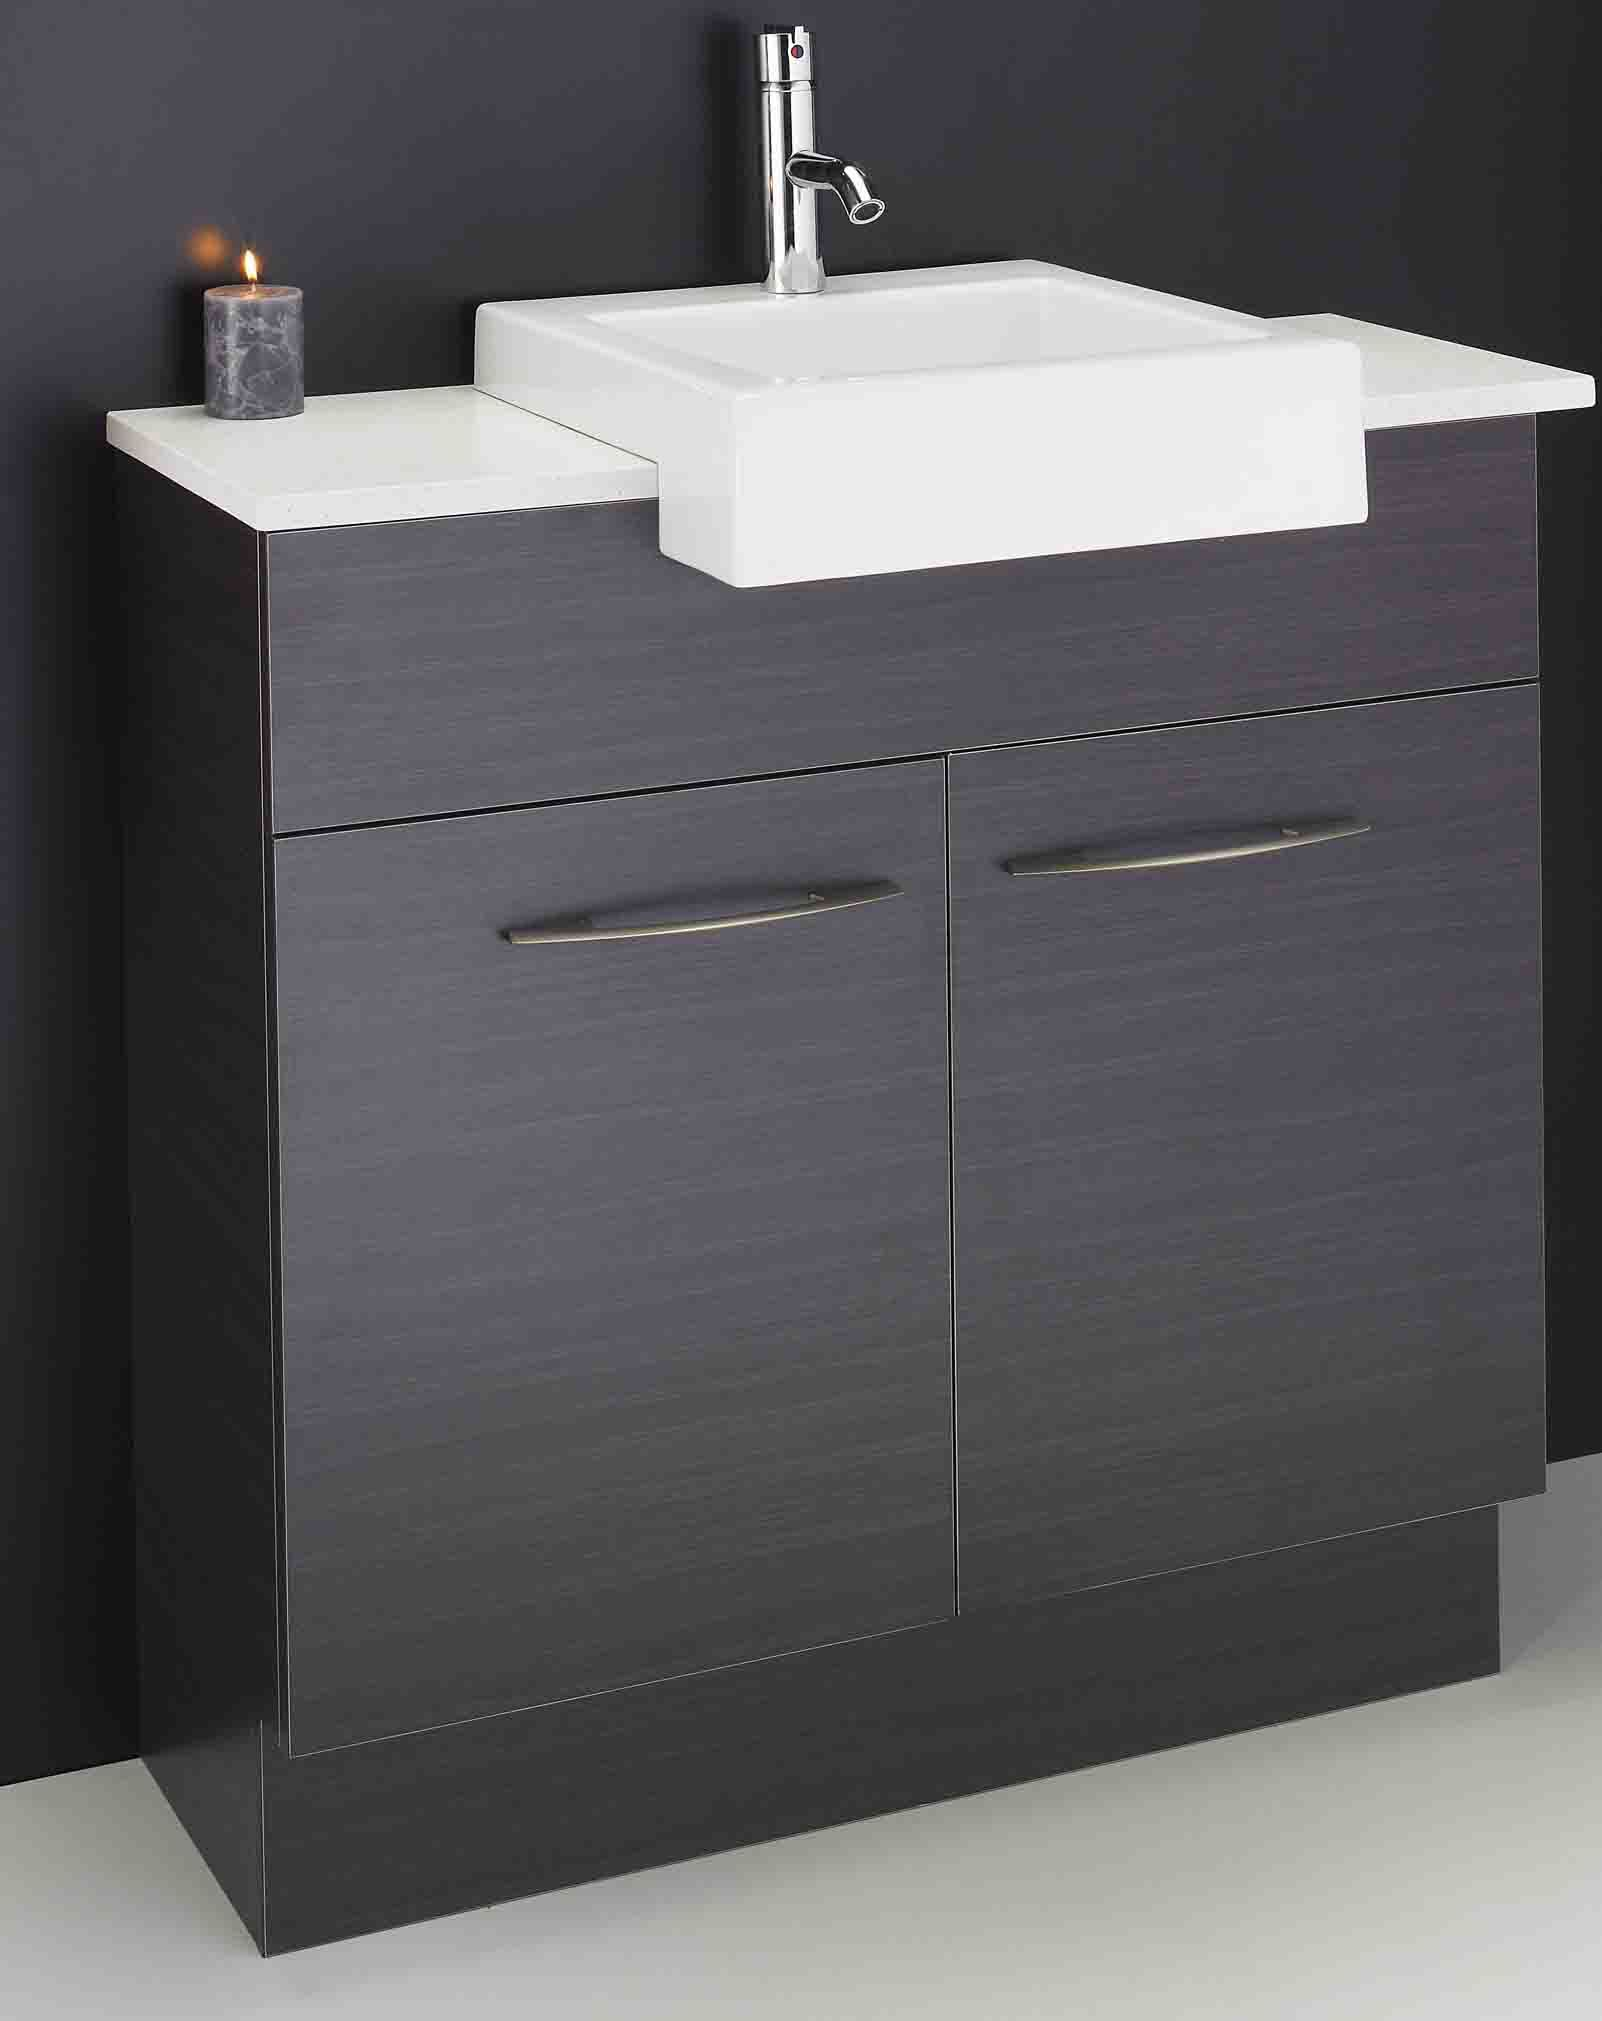 semi recessed vanity unit ensuite sydney Google Search